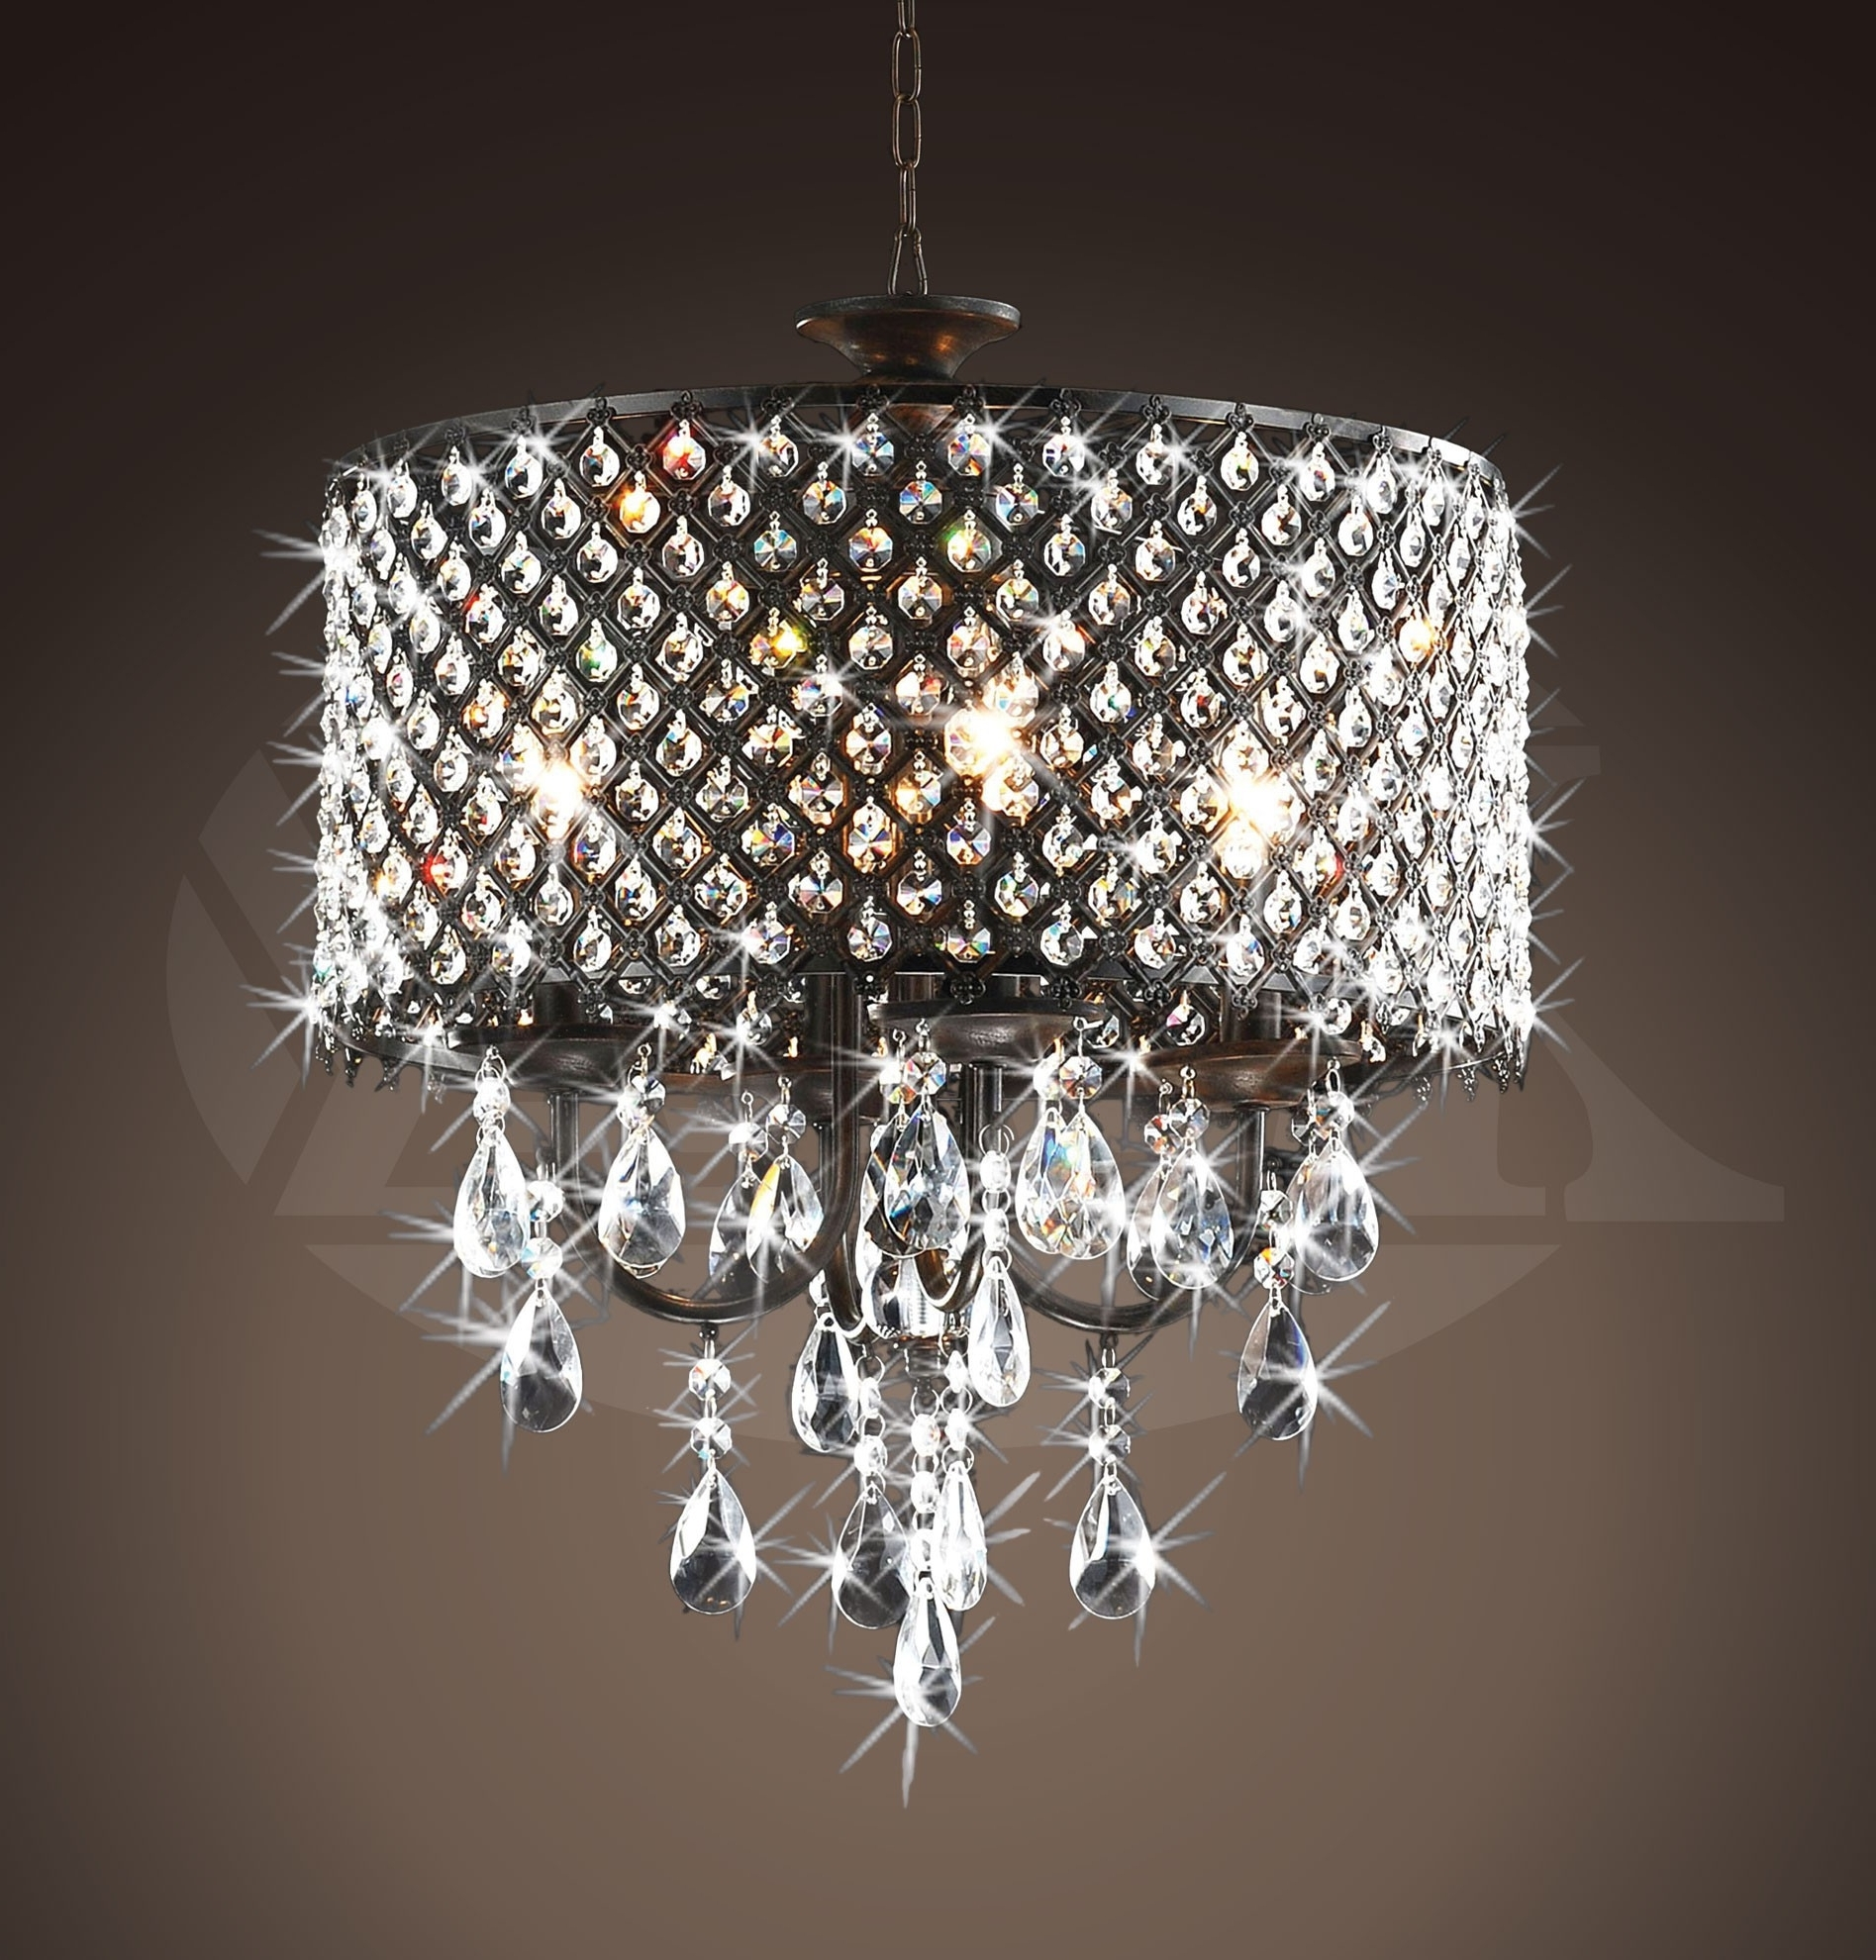 Chandeliers : Cheap Crystal Chandeliers Beautiful Chandelier Lights In Well Known Beautiful Chandelier (View 18 of 20)